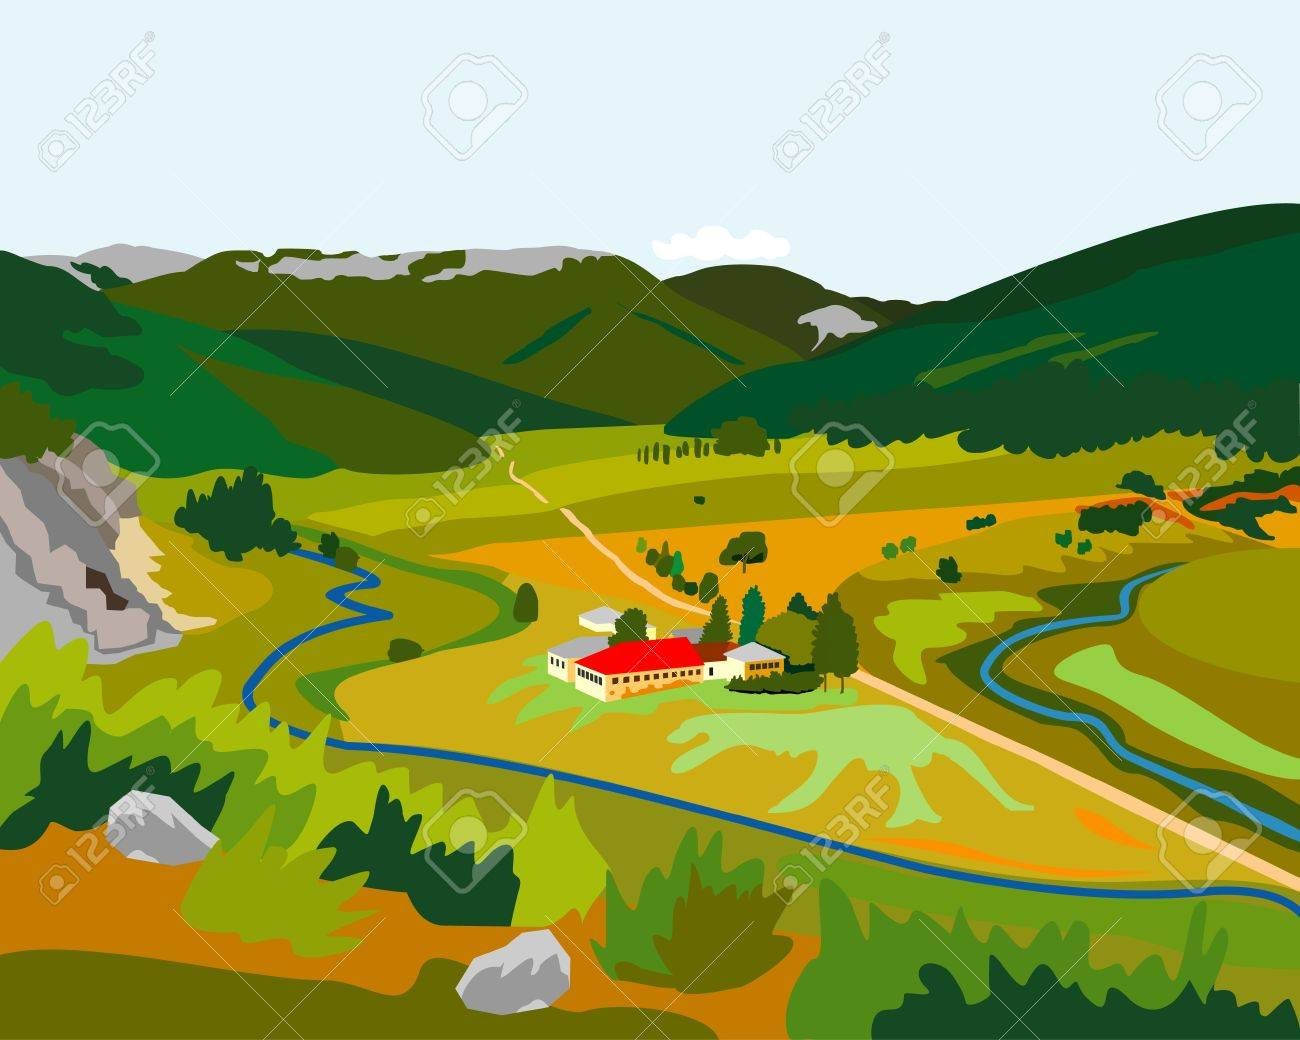 small factory in the mountains Stock Vector - 11072699